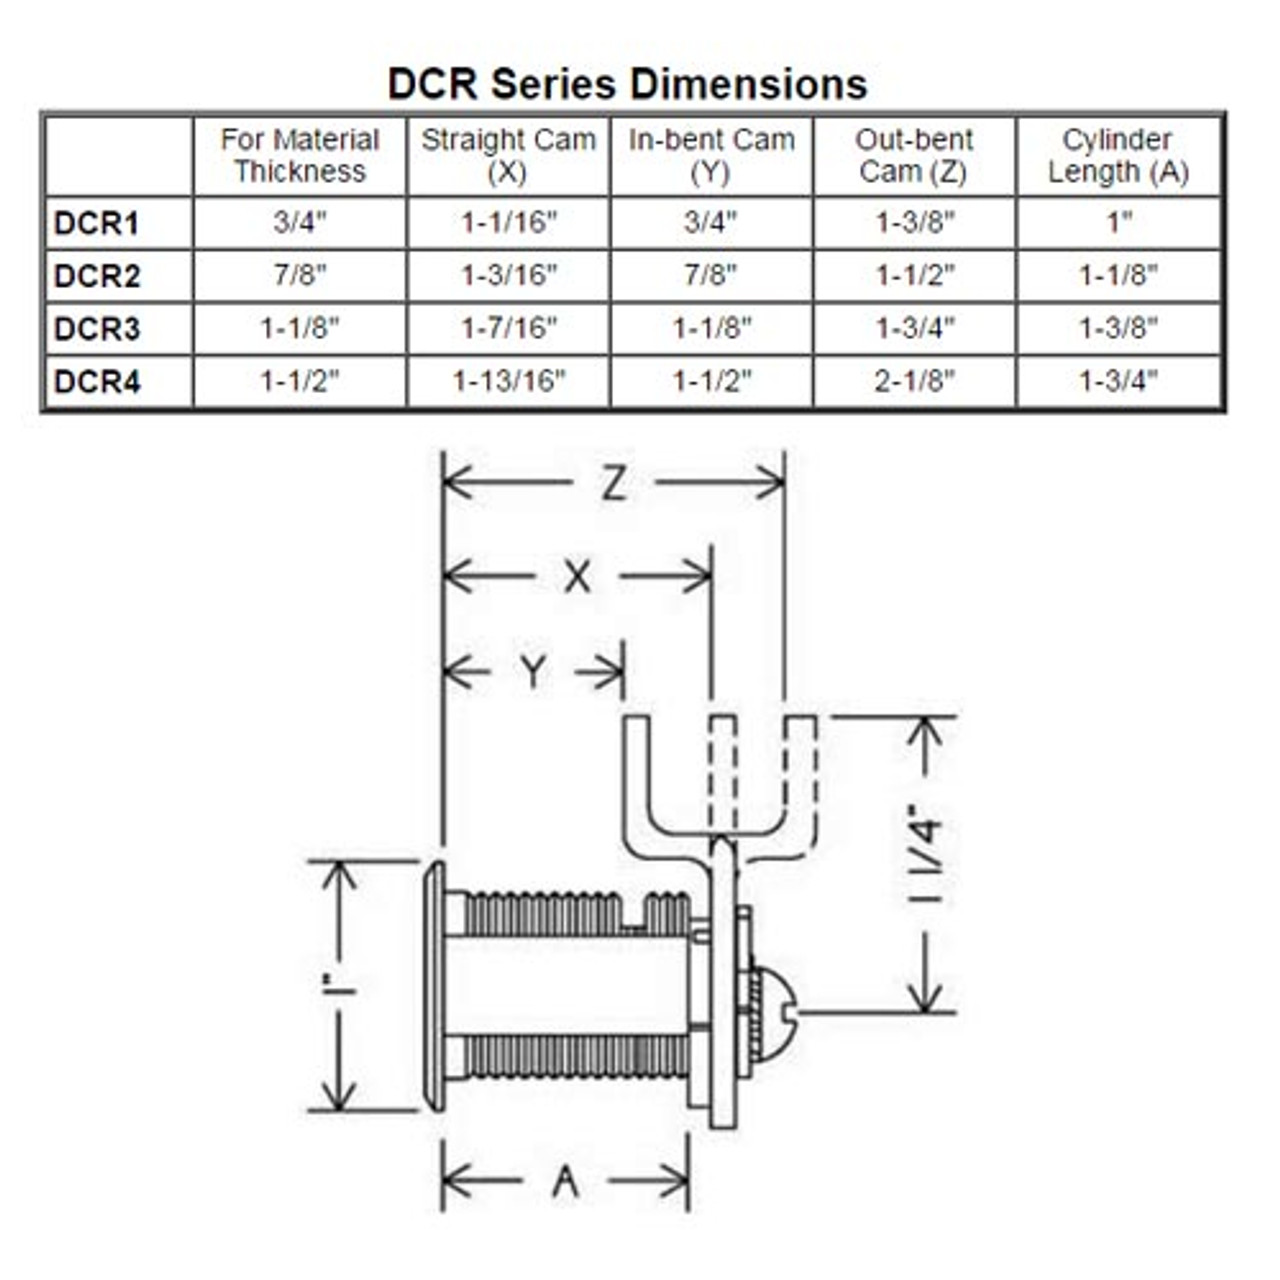 Olympus DCR3-KD-US3 R Series Keyed Different Reversible Cam Lock in Bright Brass